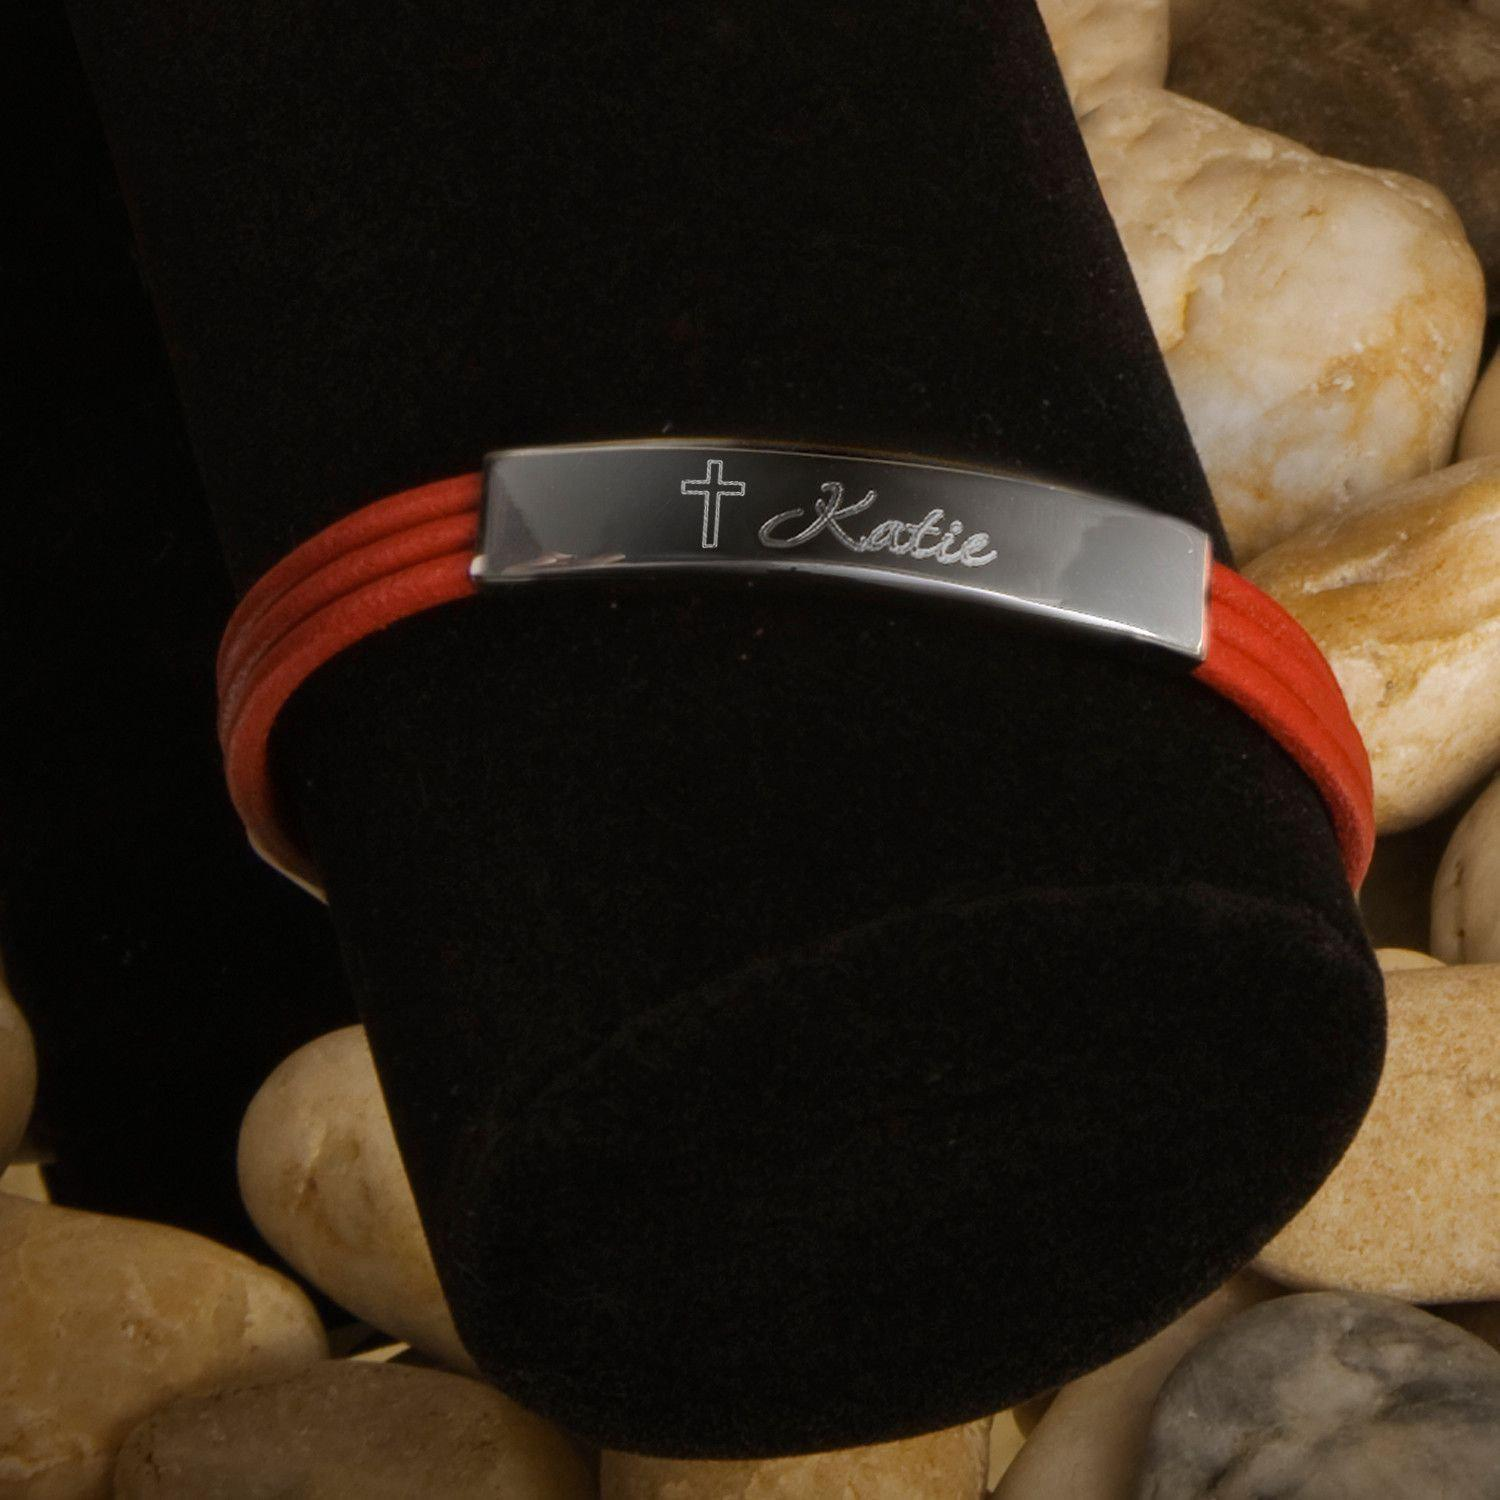 Inspirational Leather Bracelets with Engraved Cross